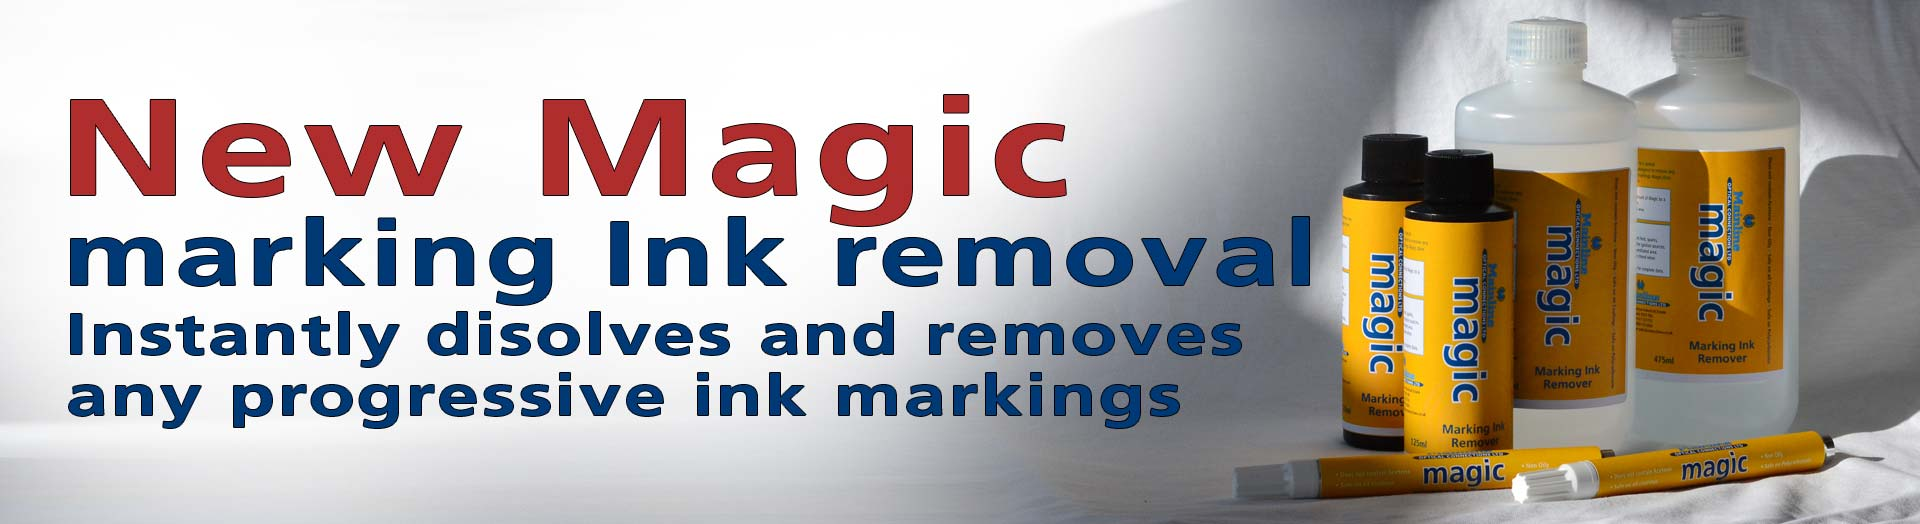 Magic Marking Ink Remover